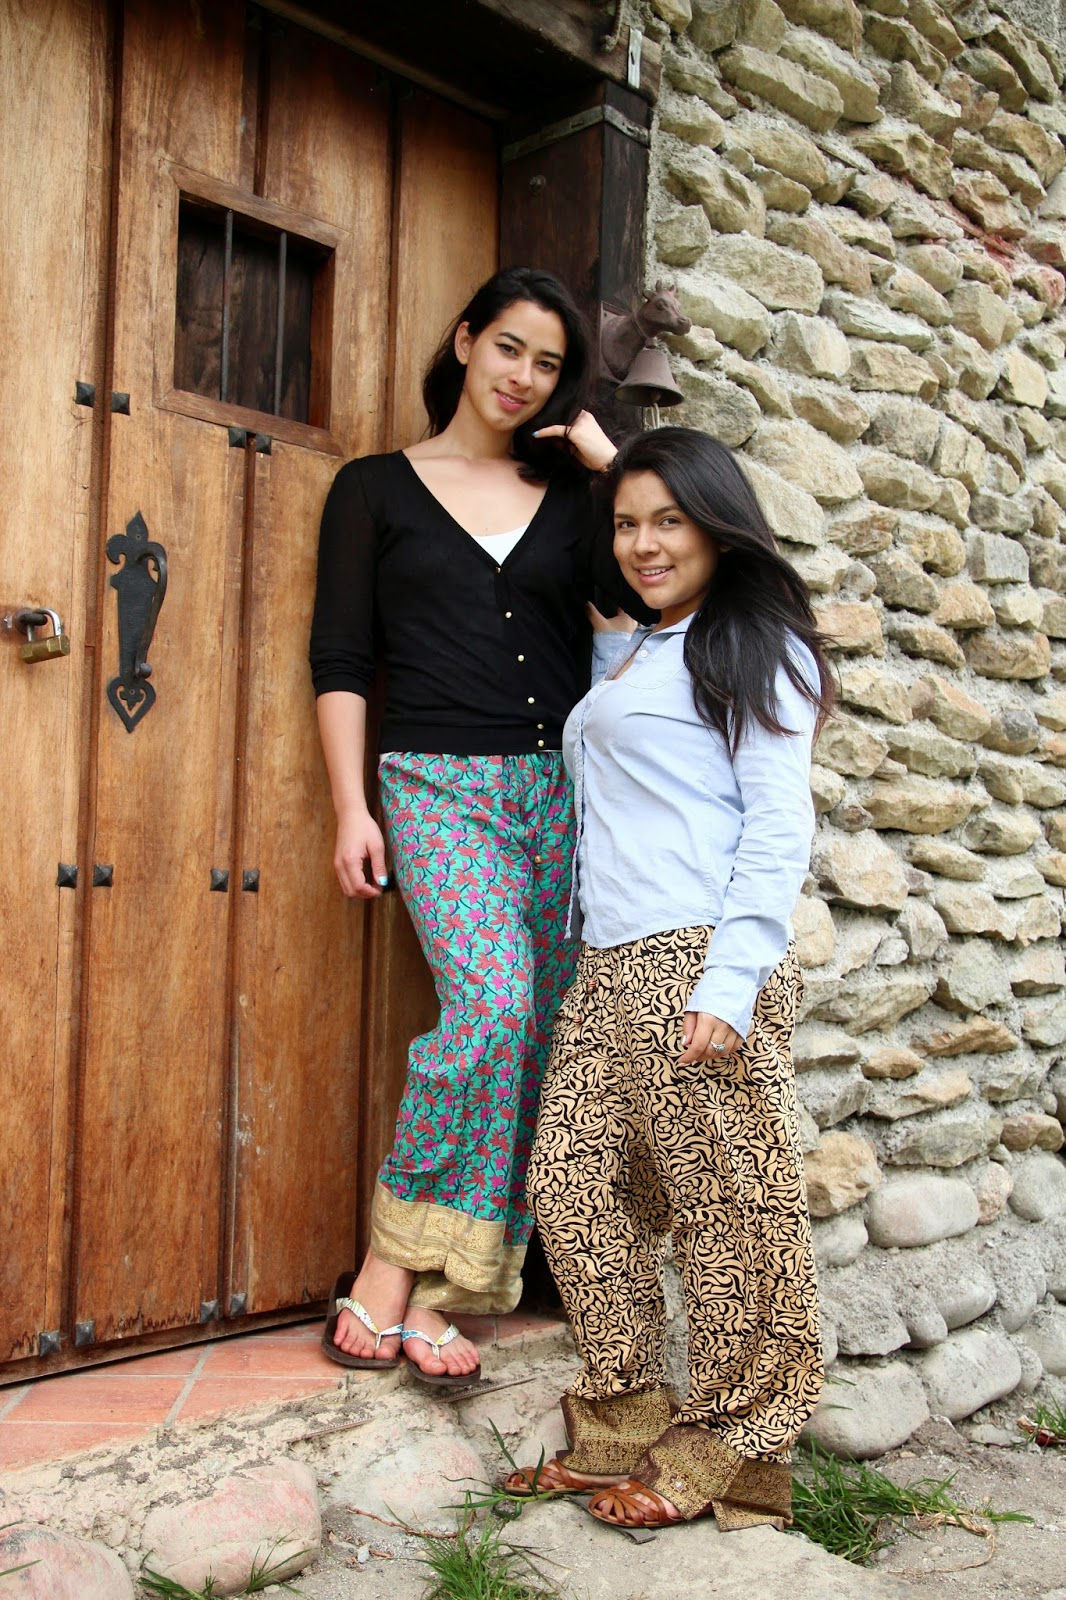 punjammies, fair trade, women, fashion